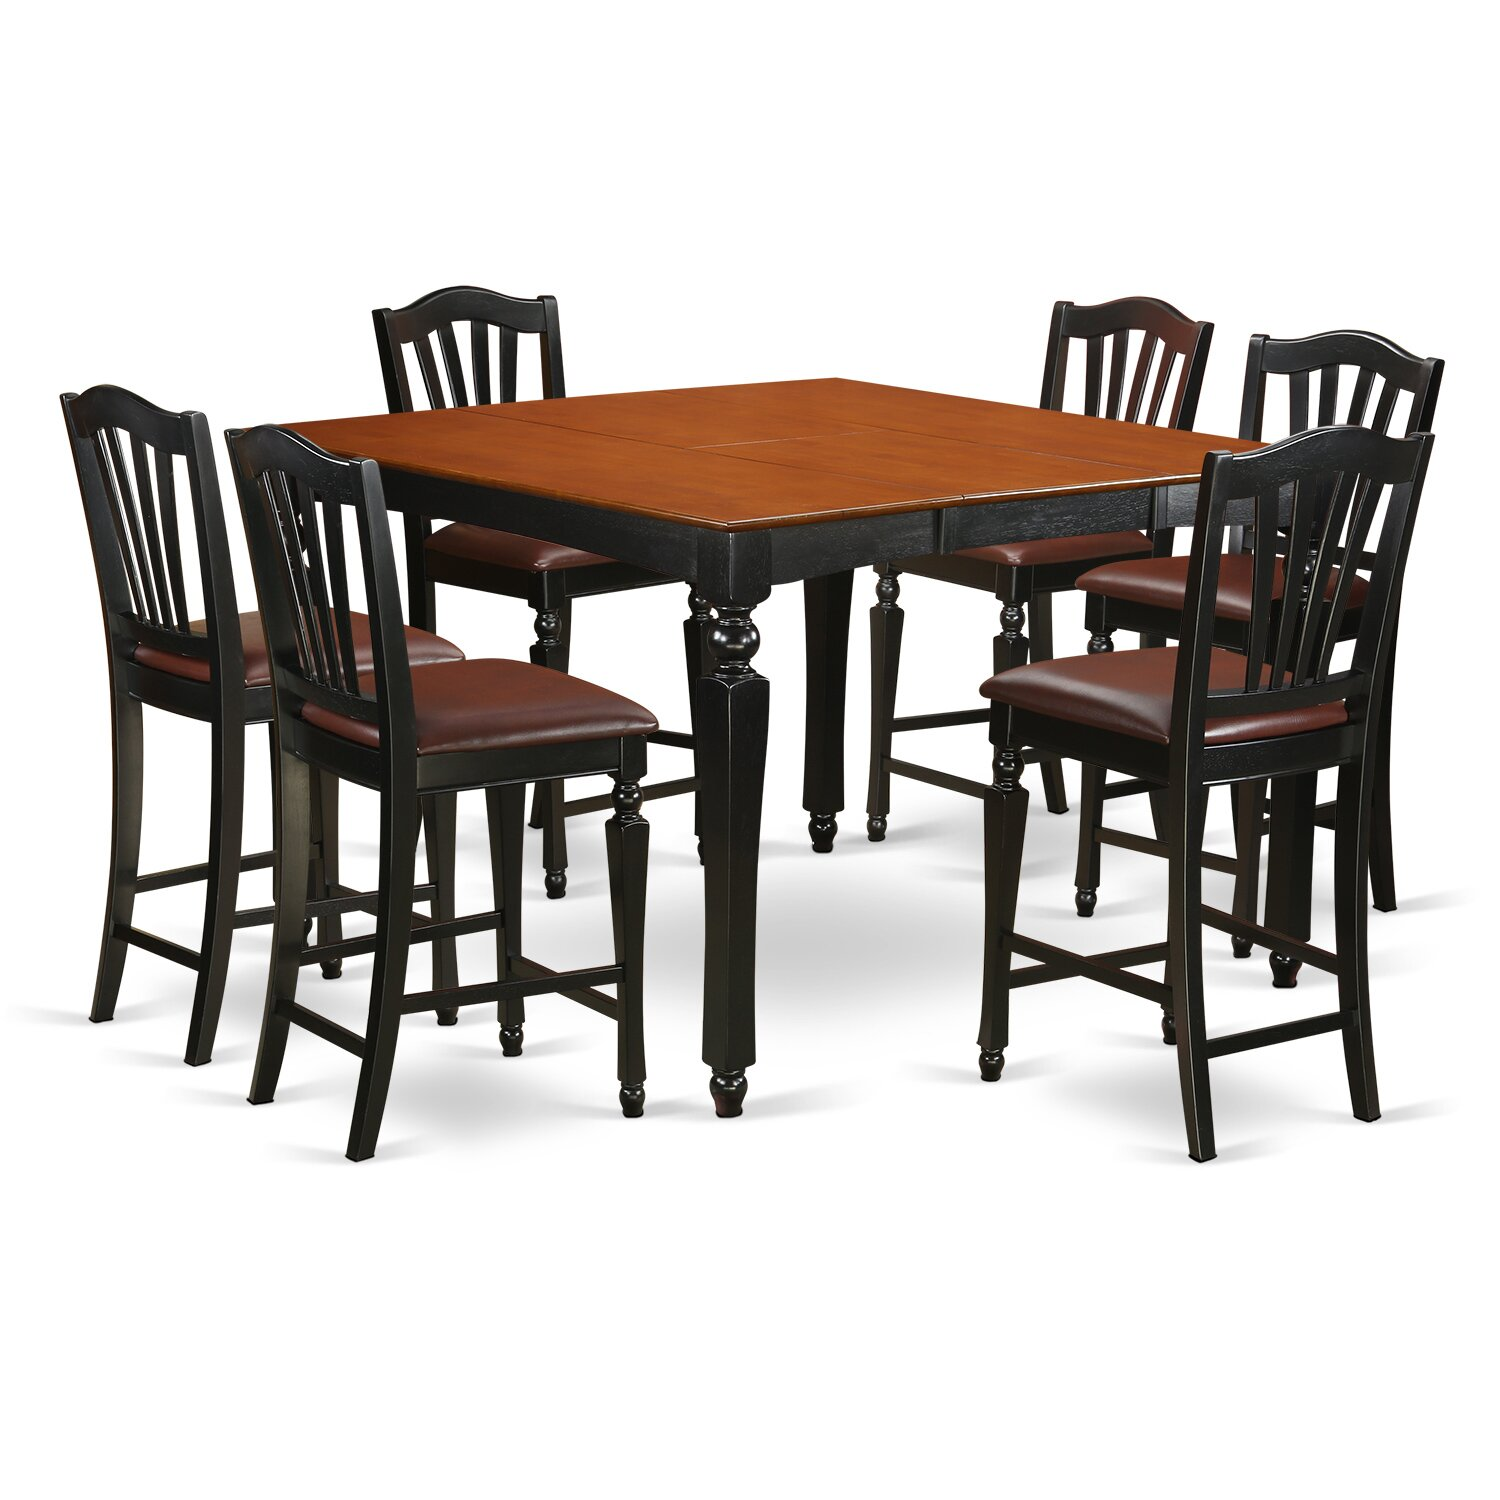 East west chelsea 7 piece counter height dining set for 7 piece dining room set counter height